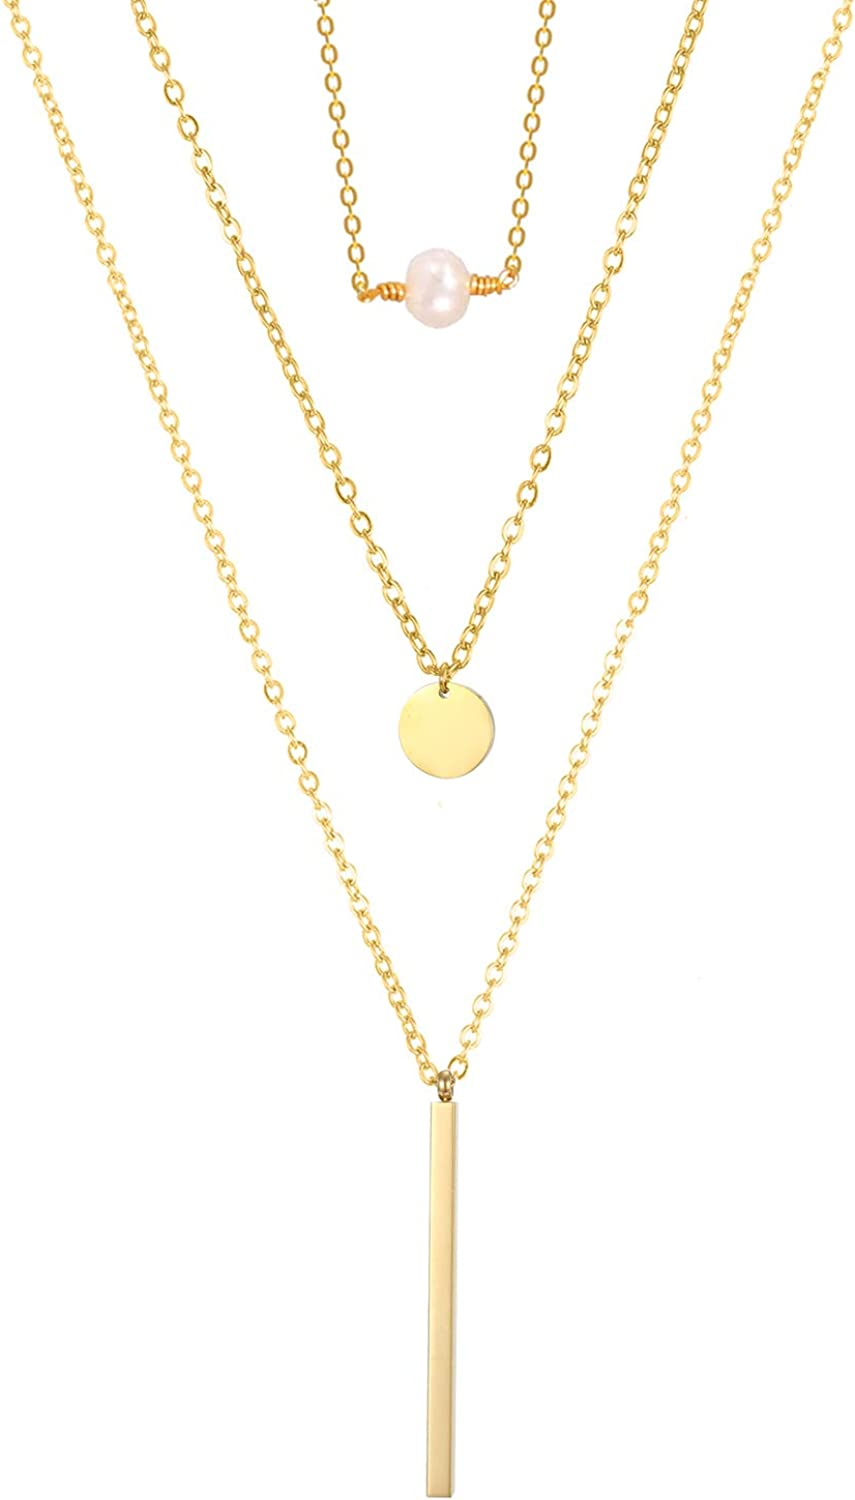 Layered Necklace 18K Gold Plated Pendant Adjustable Layering Necklaces For Women Dainty Chain